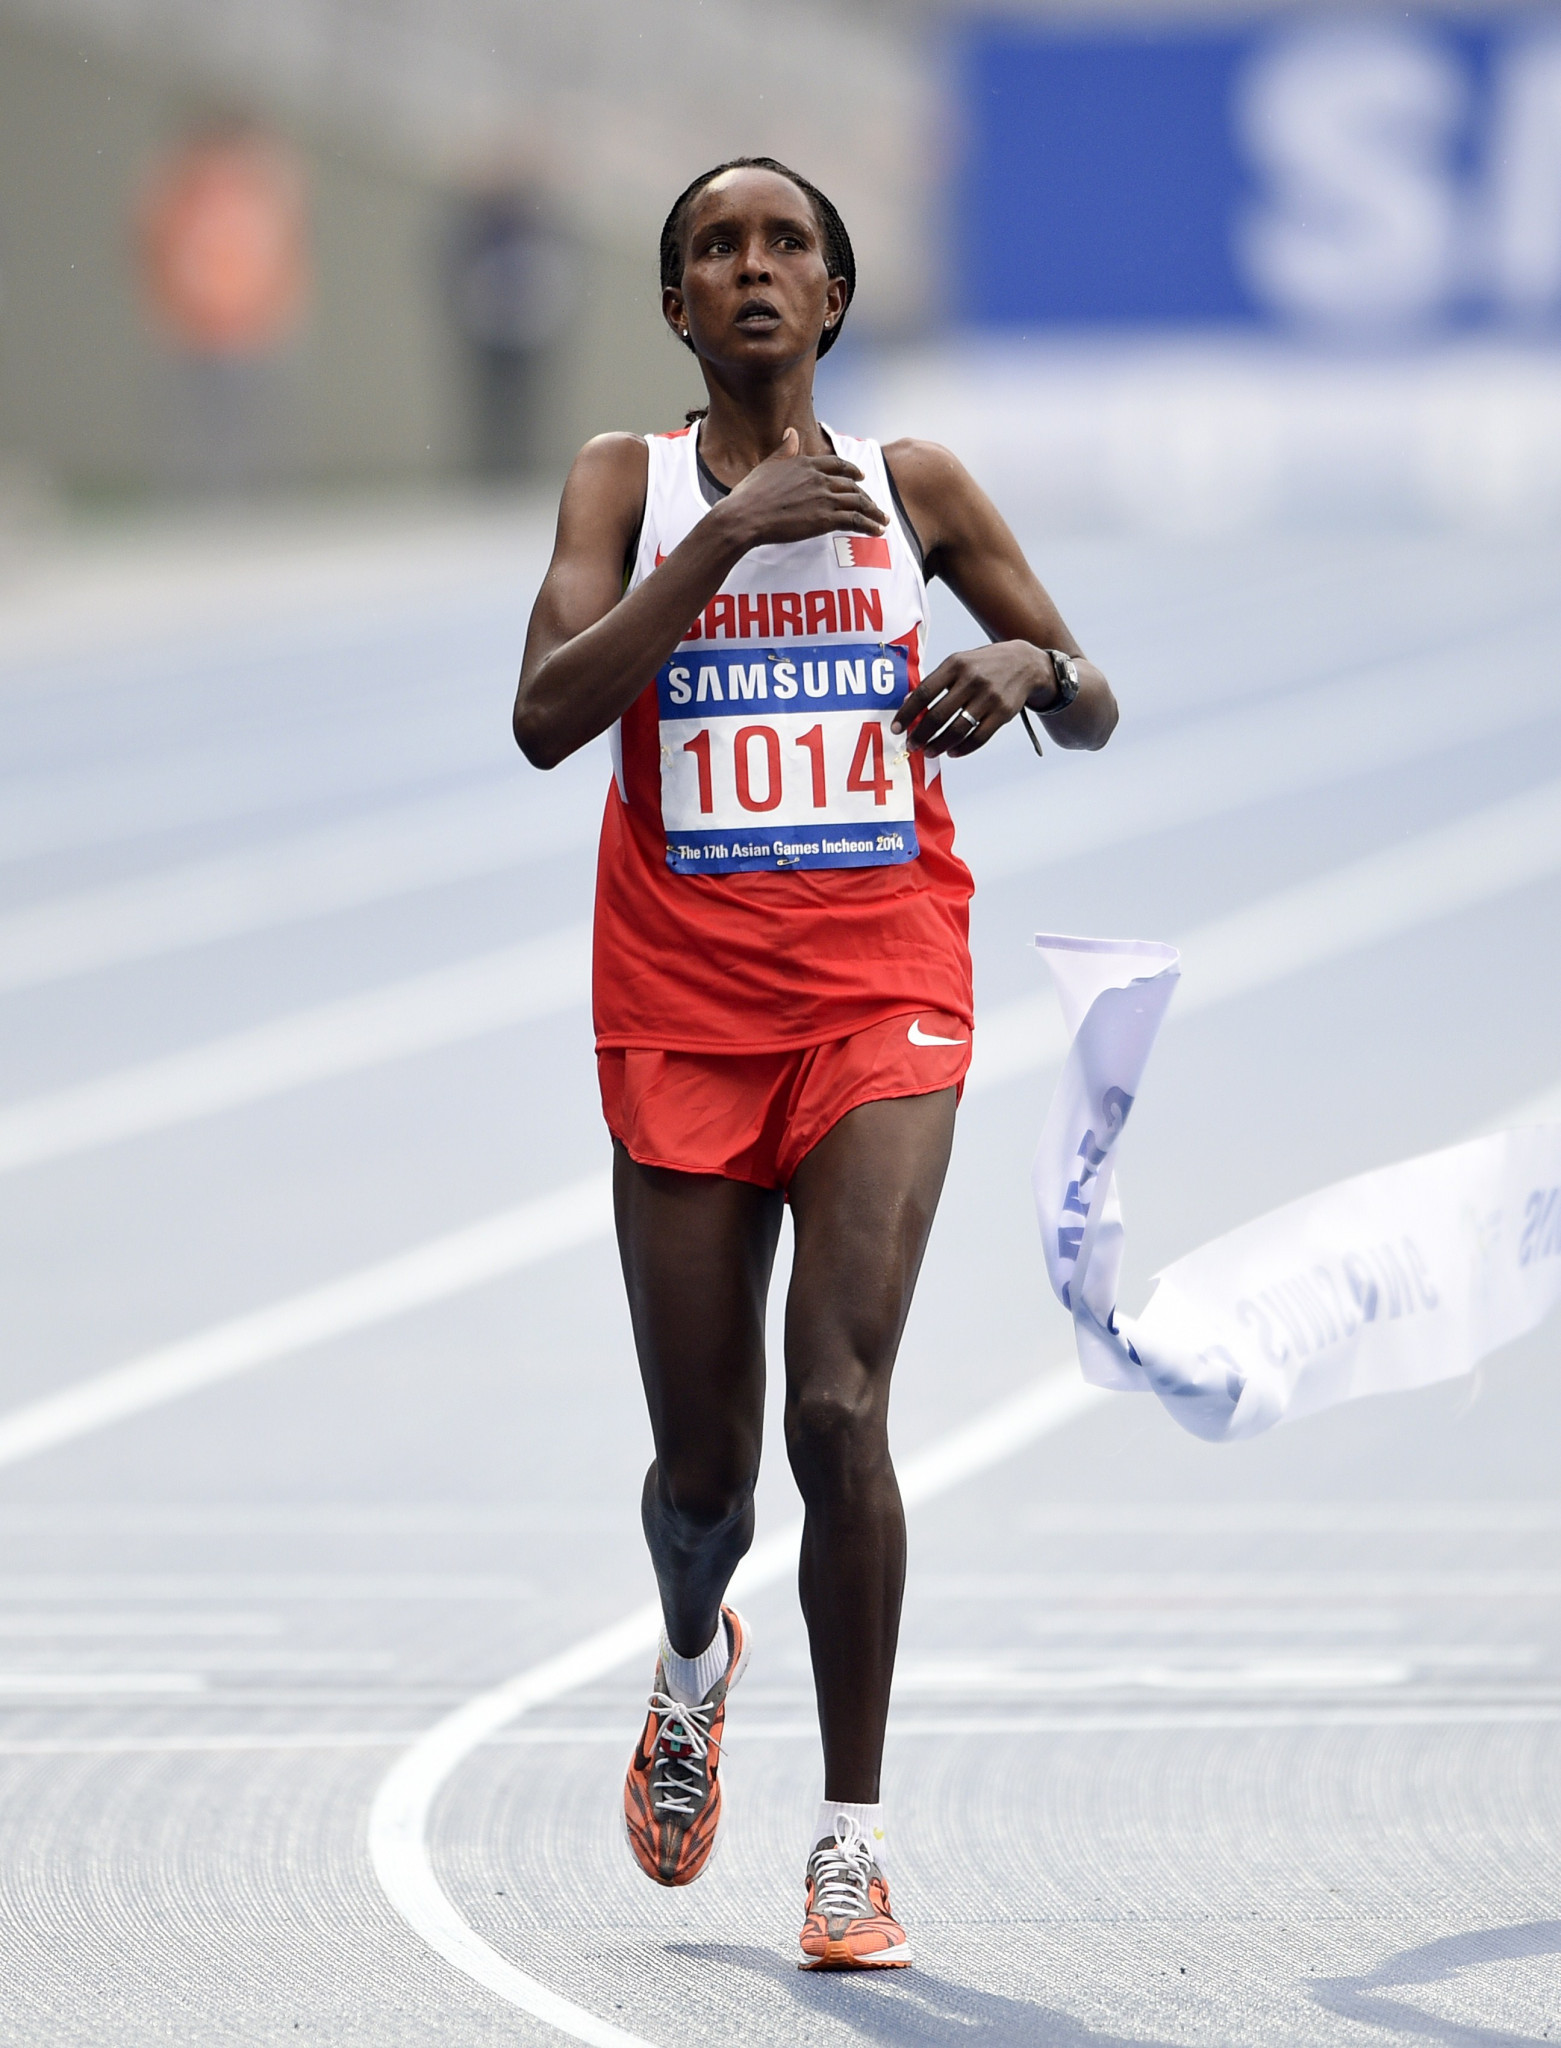 Eunice Kirwa won the gold medal in the marathon at the 2014 Asian Games in Incheon shortly after switching her allegiance from Kenya to Bahrain ©Getty Images